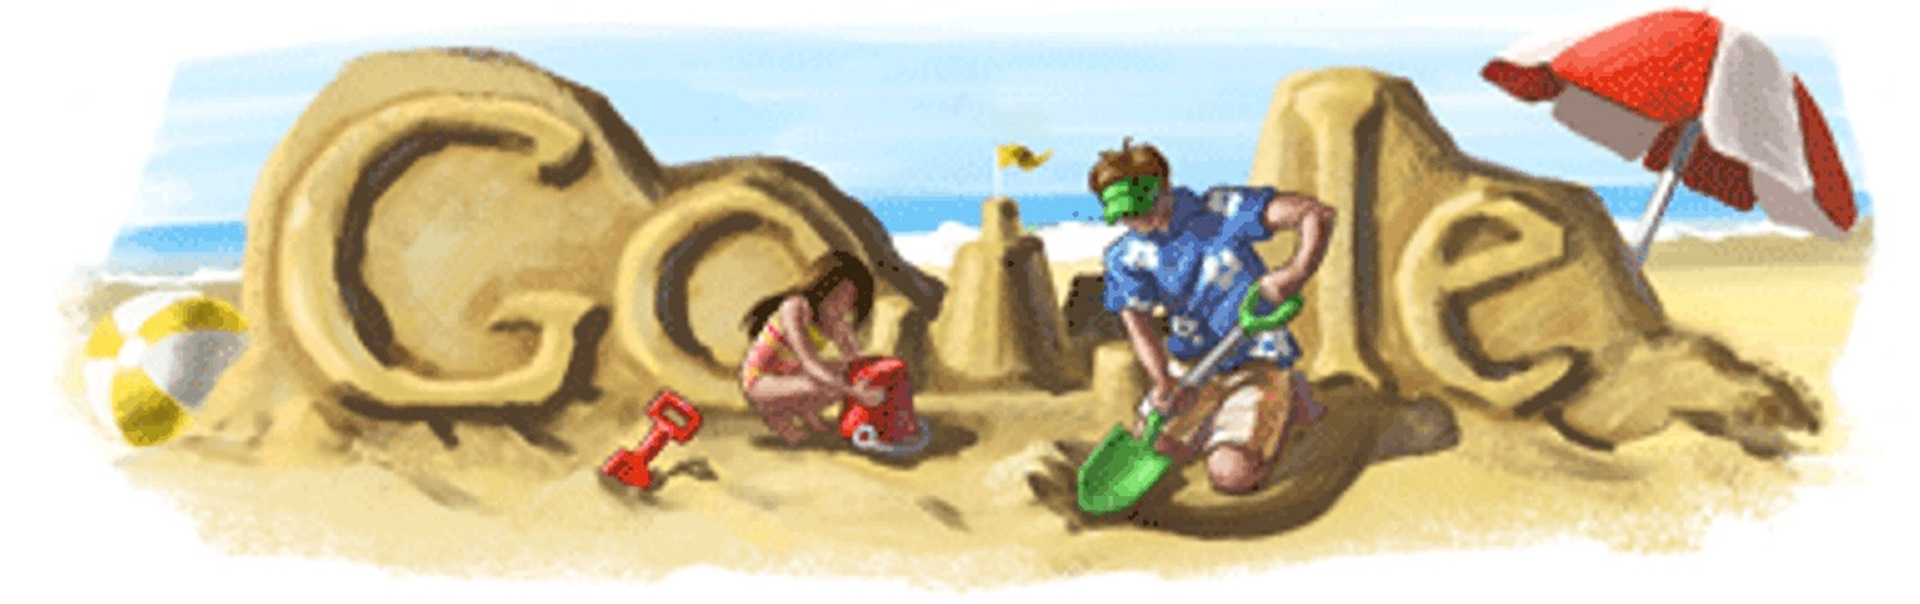 Fathers day 2009 Google Doodle